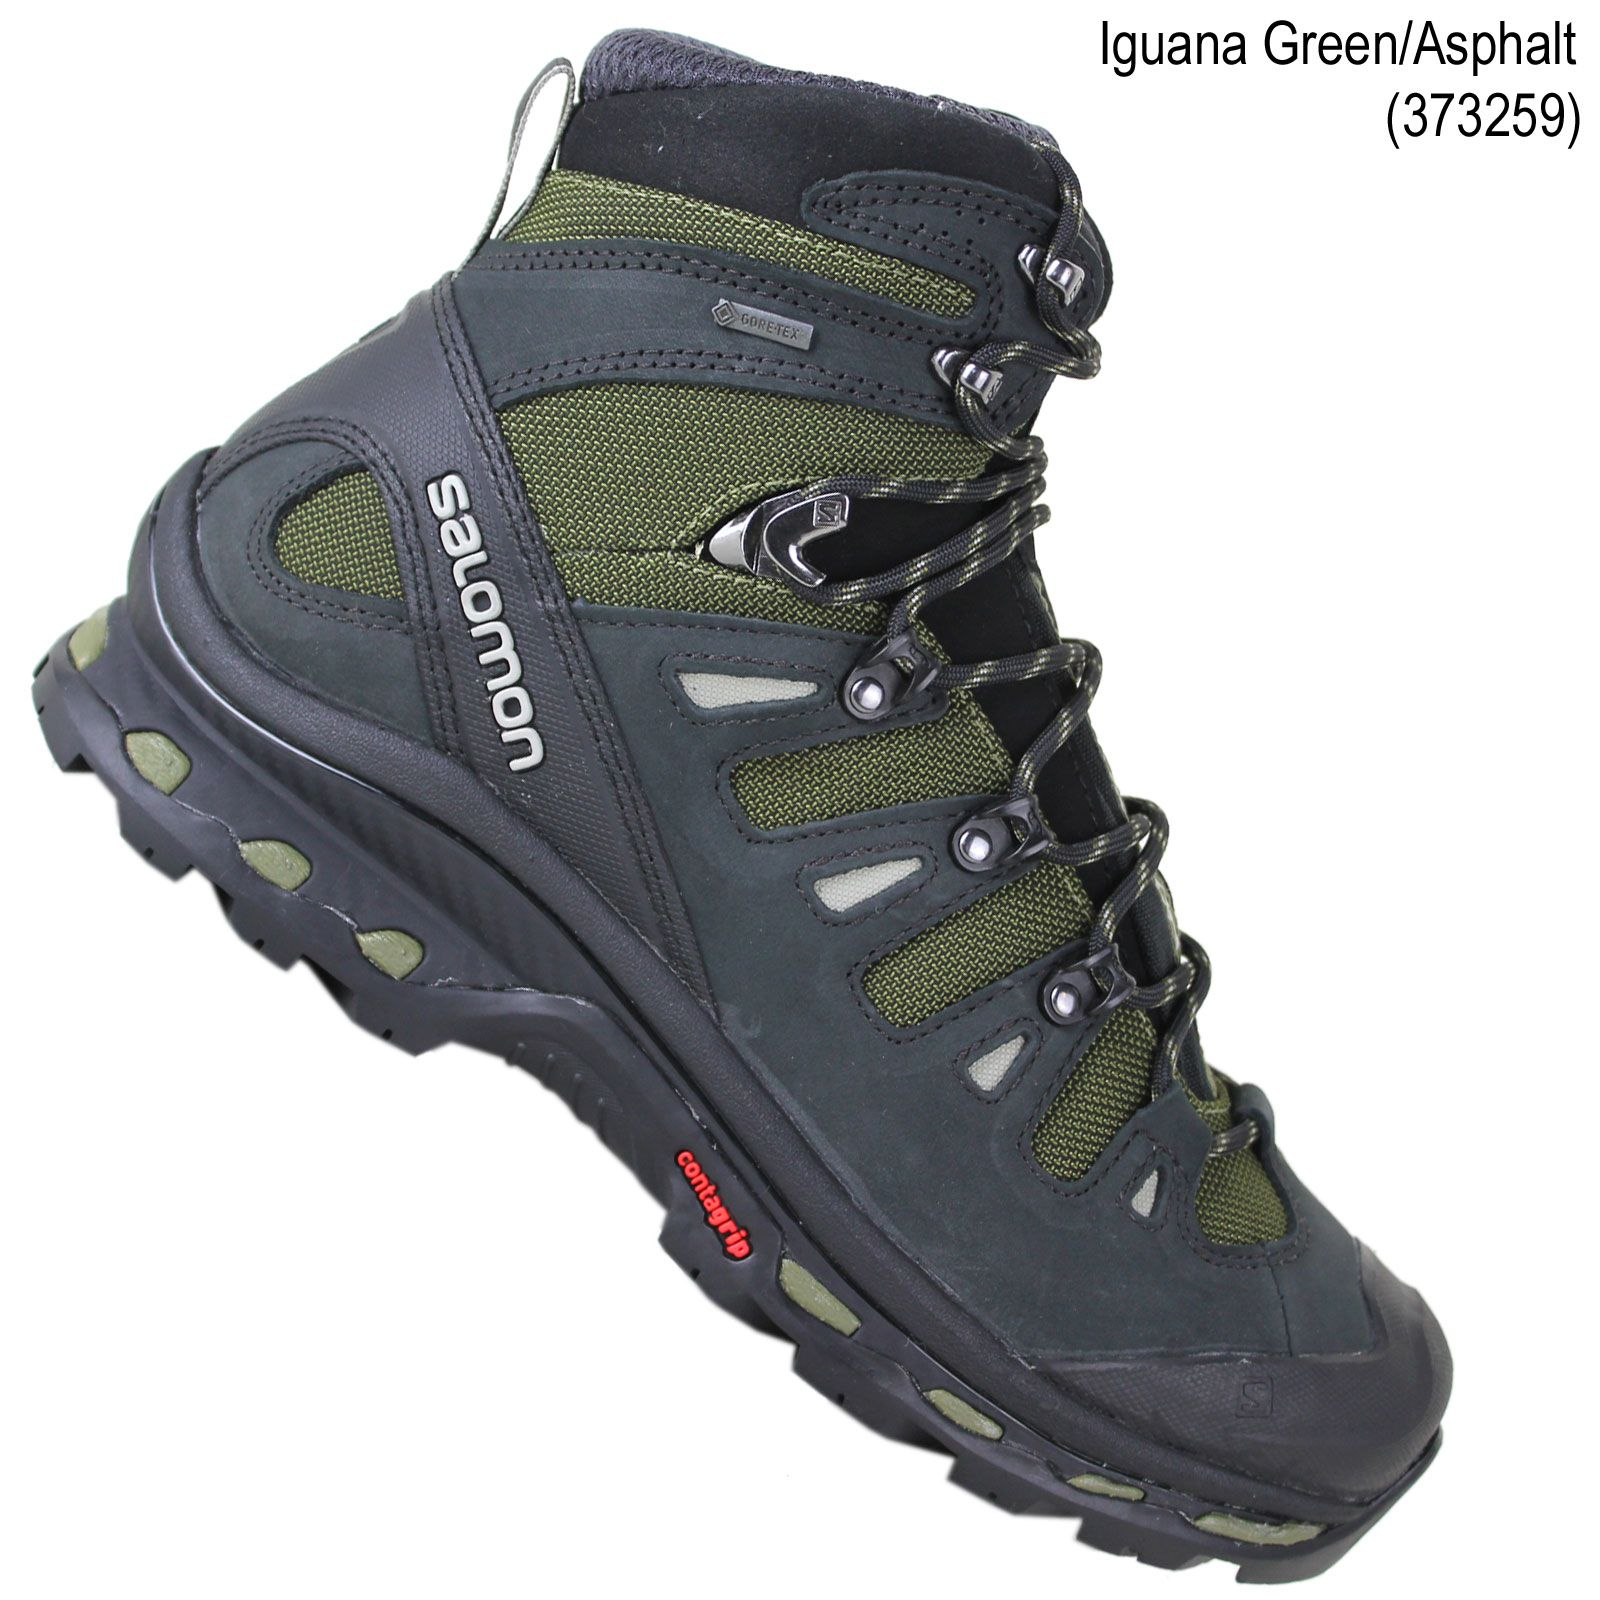 Salomon-Quest-4D-GTX-mens-hiking-boots-Trekking-Shoes-Hiking ...